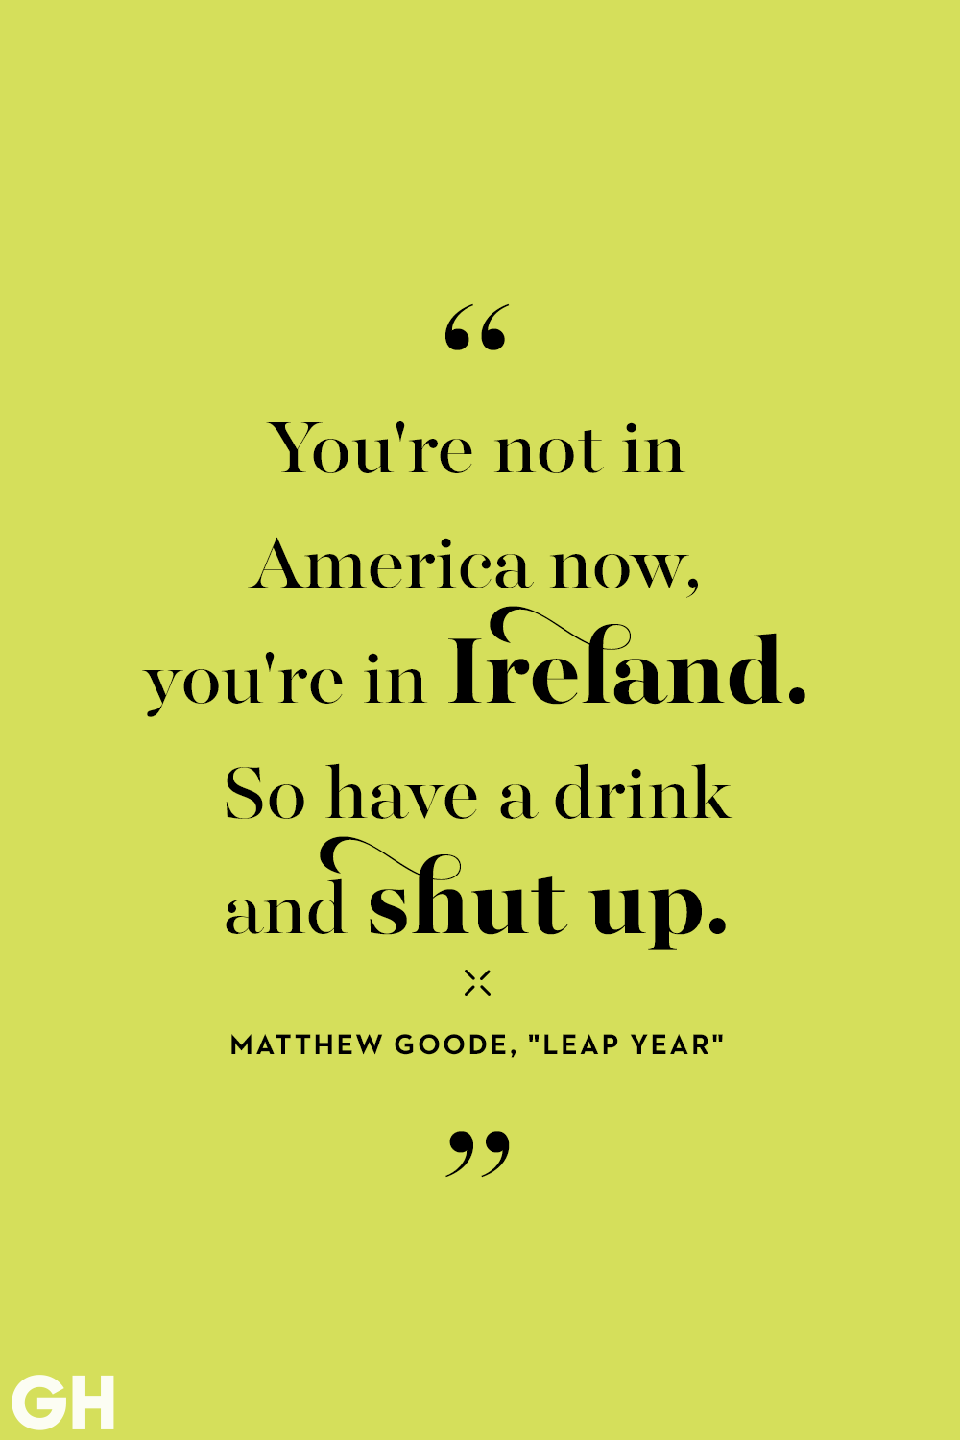 <p>You're not in America now, you're in Ireland. So have a drink and shut up. </p>